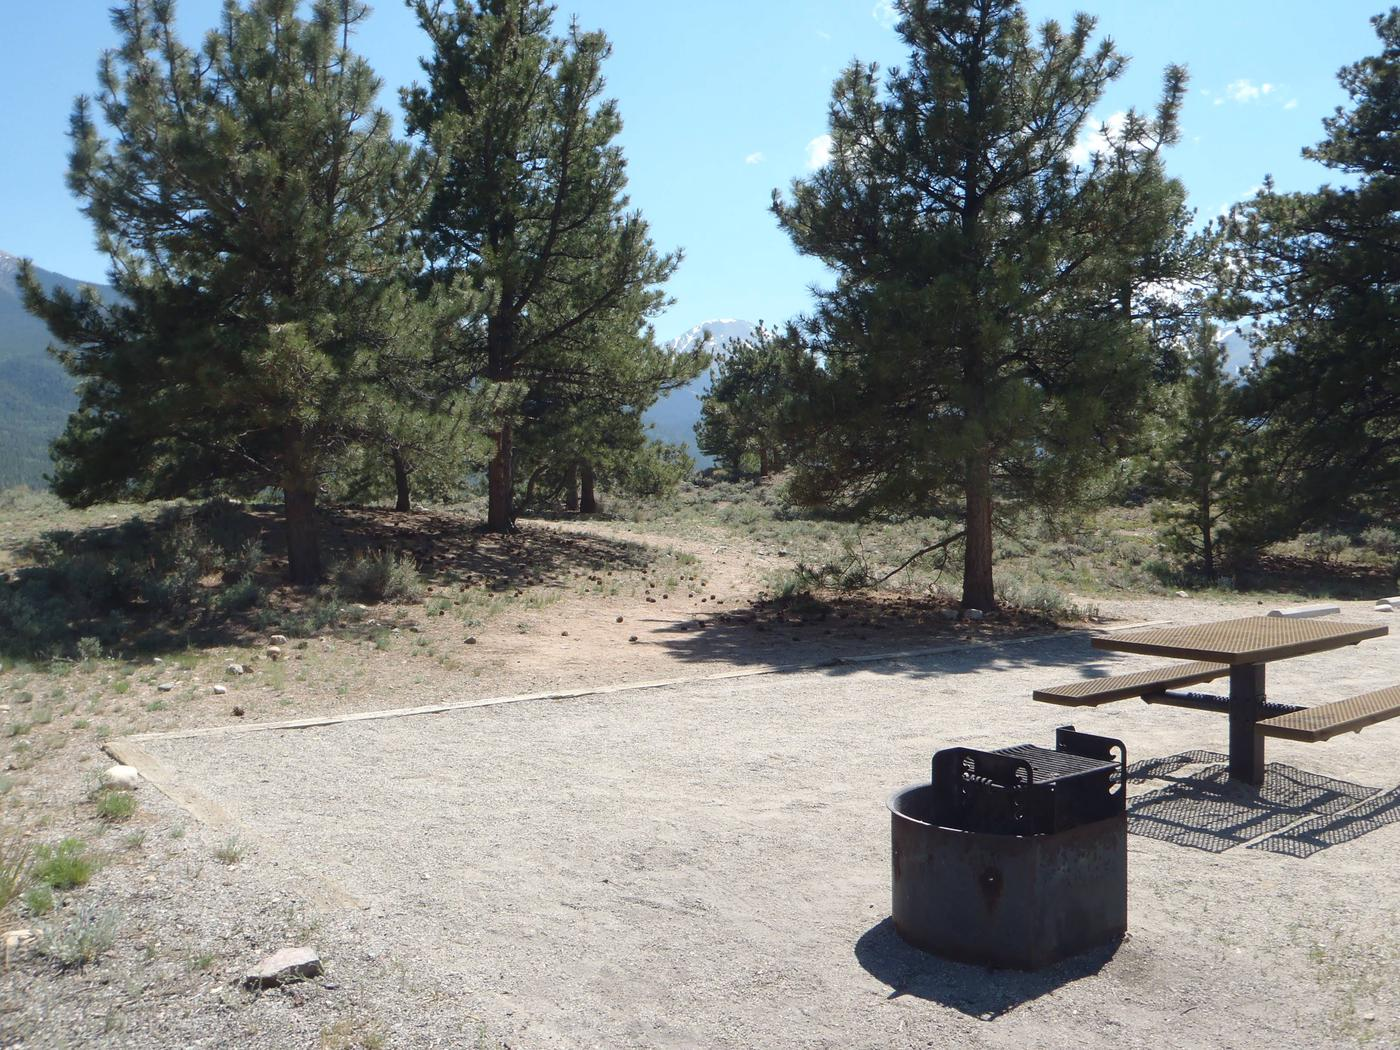 White Star Campground, site 18 tent pad